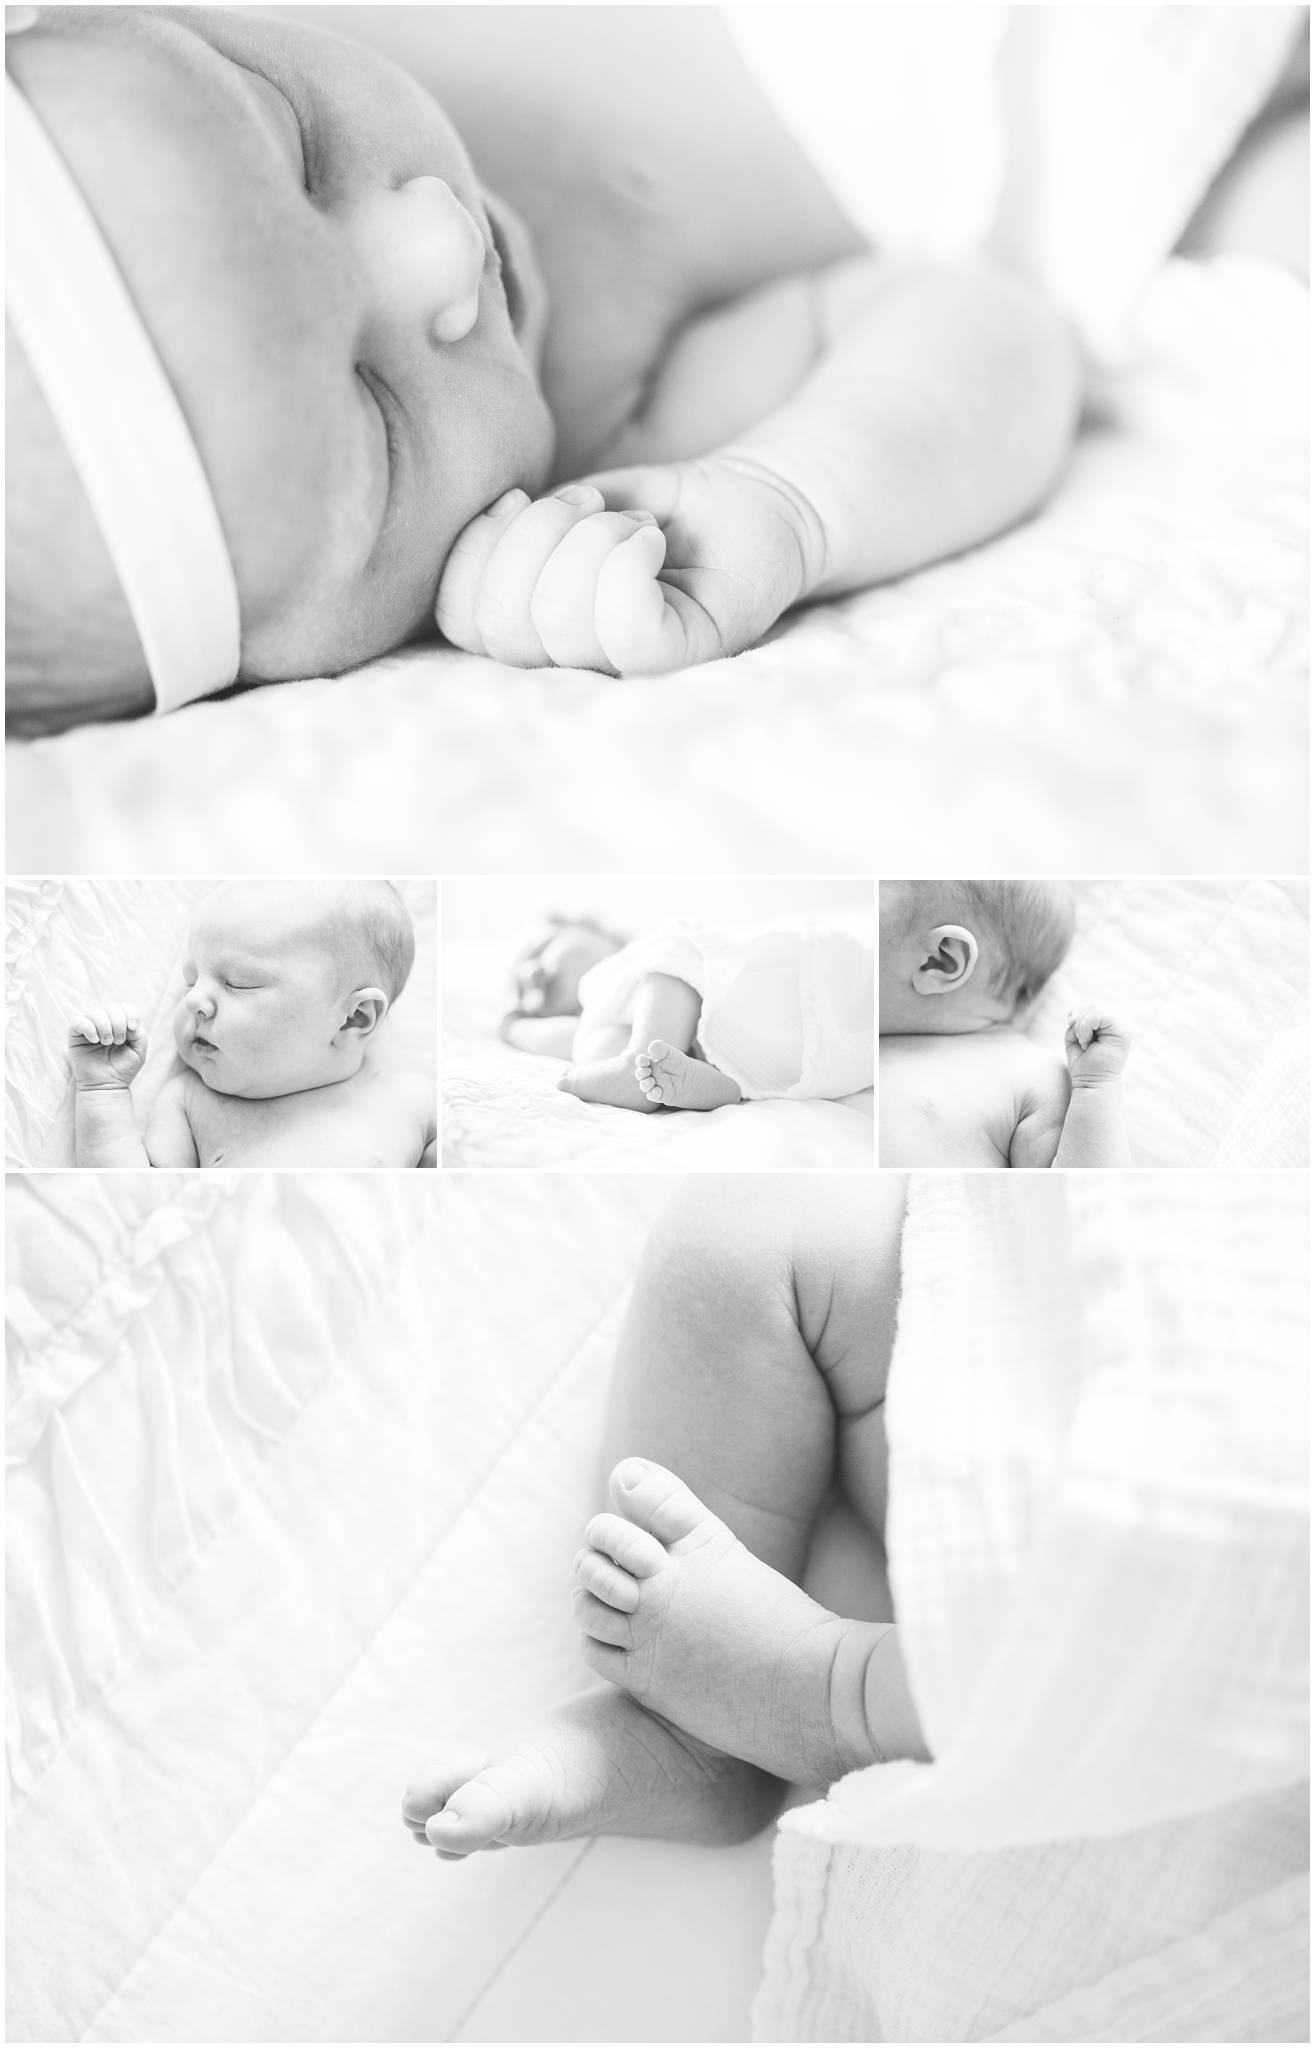 Autumn-105_Lizzie-B-Imagery-Utah-Family-Photographer-Central-Utah-Photographer-Utah-County-Newborn.jpg